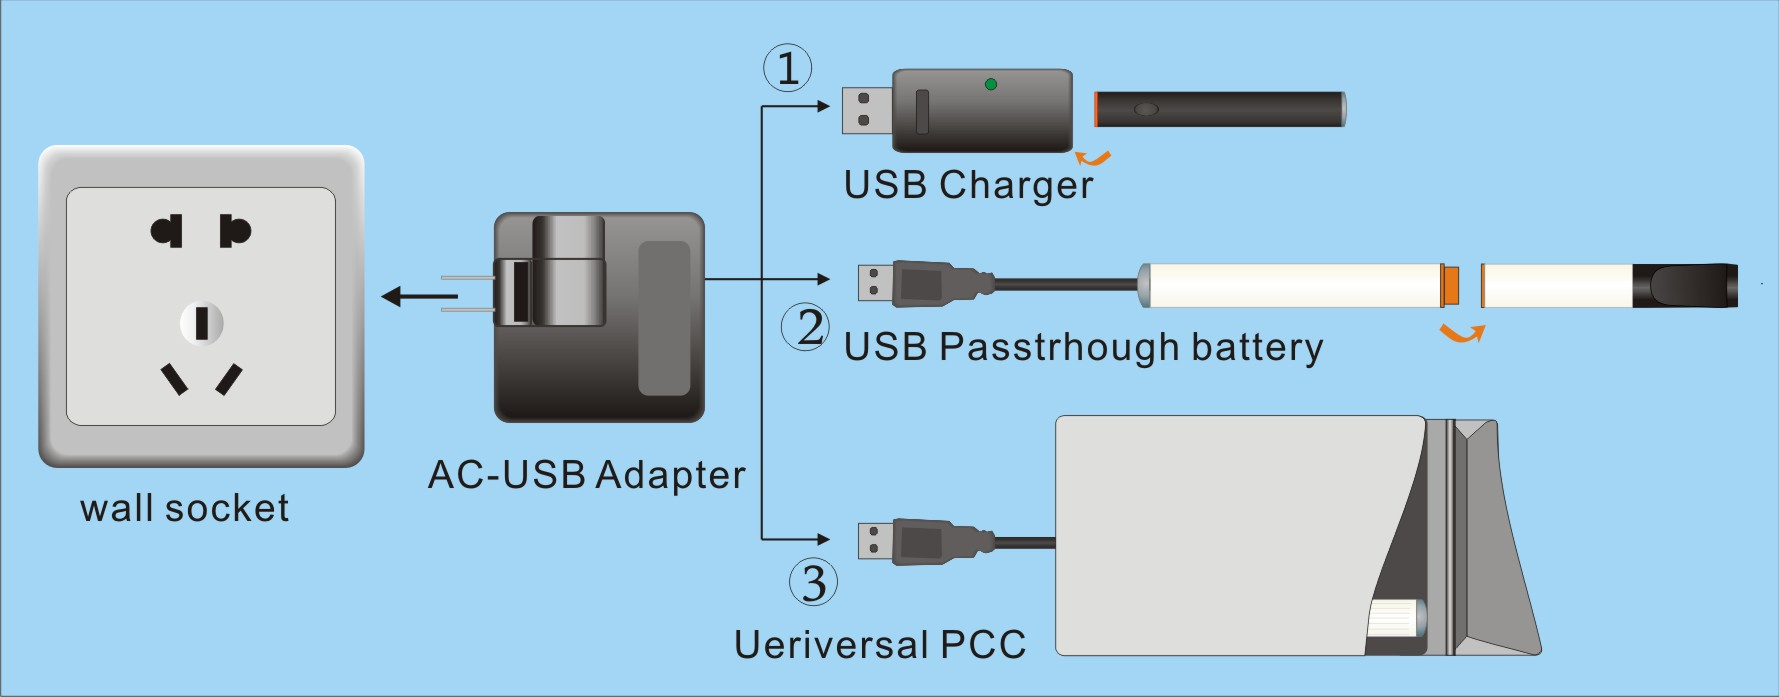 AC-USB adapter with US plug